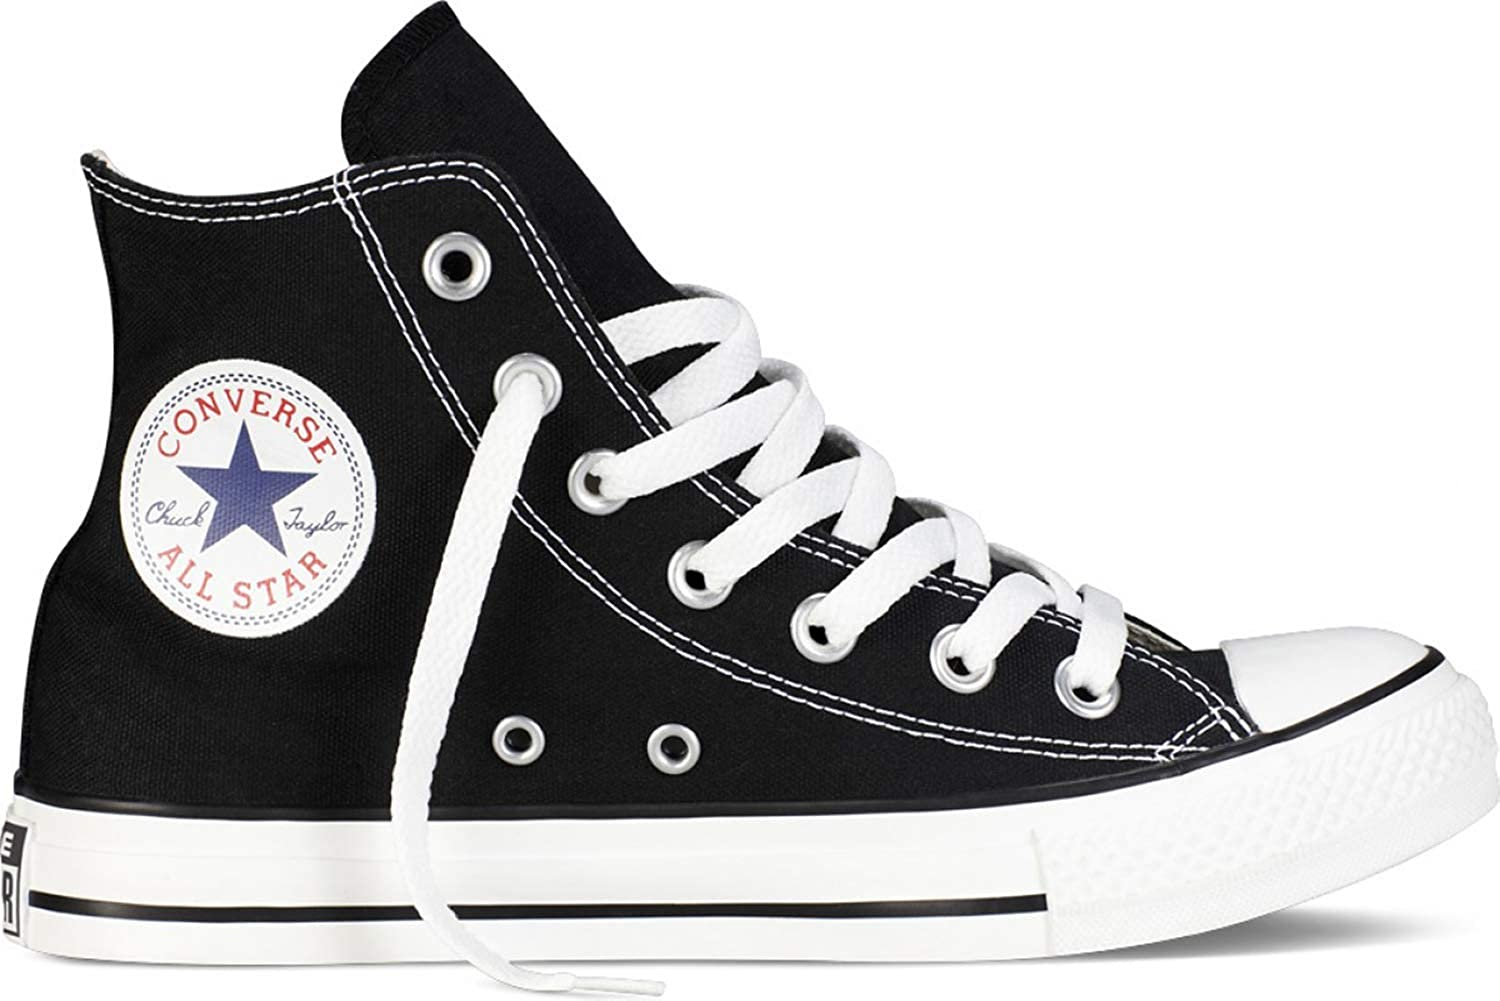 Details about CONVERSE All Star Chuck Taylor Mens 5 Red White Blue Fold Down High Top Sneaker